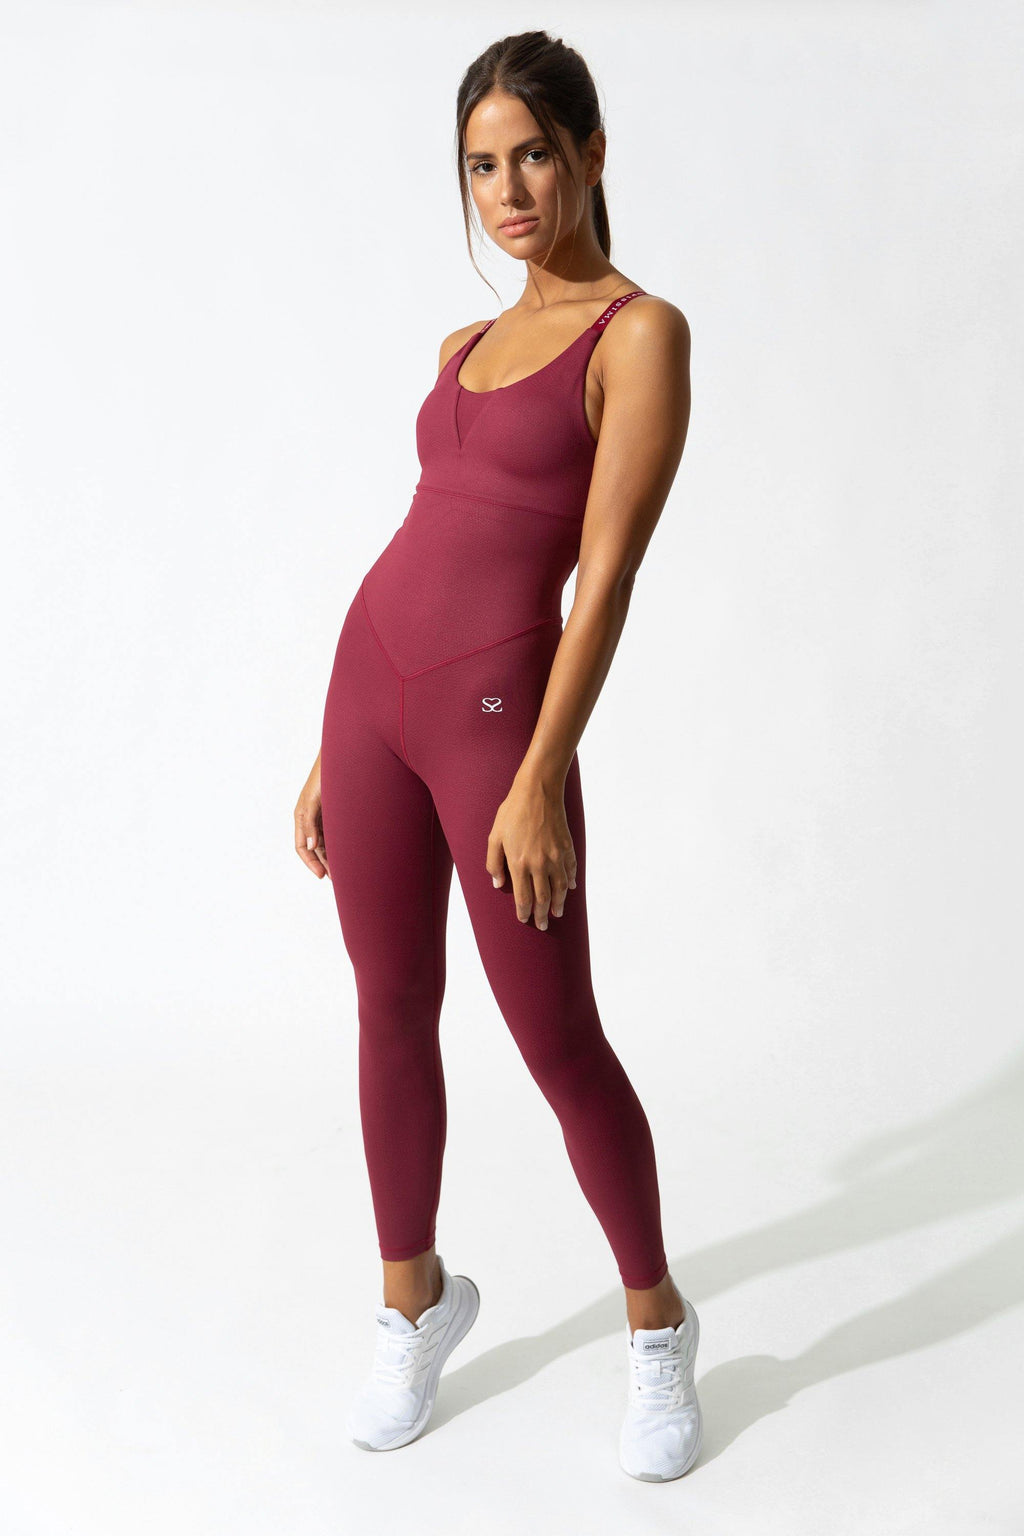 Topíssima Jumpsuit Serenity Cherry Red Snake